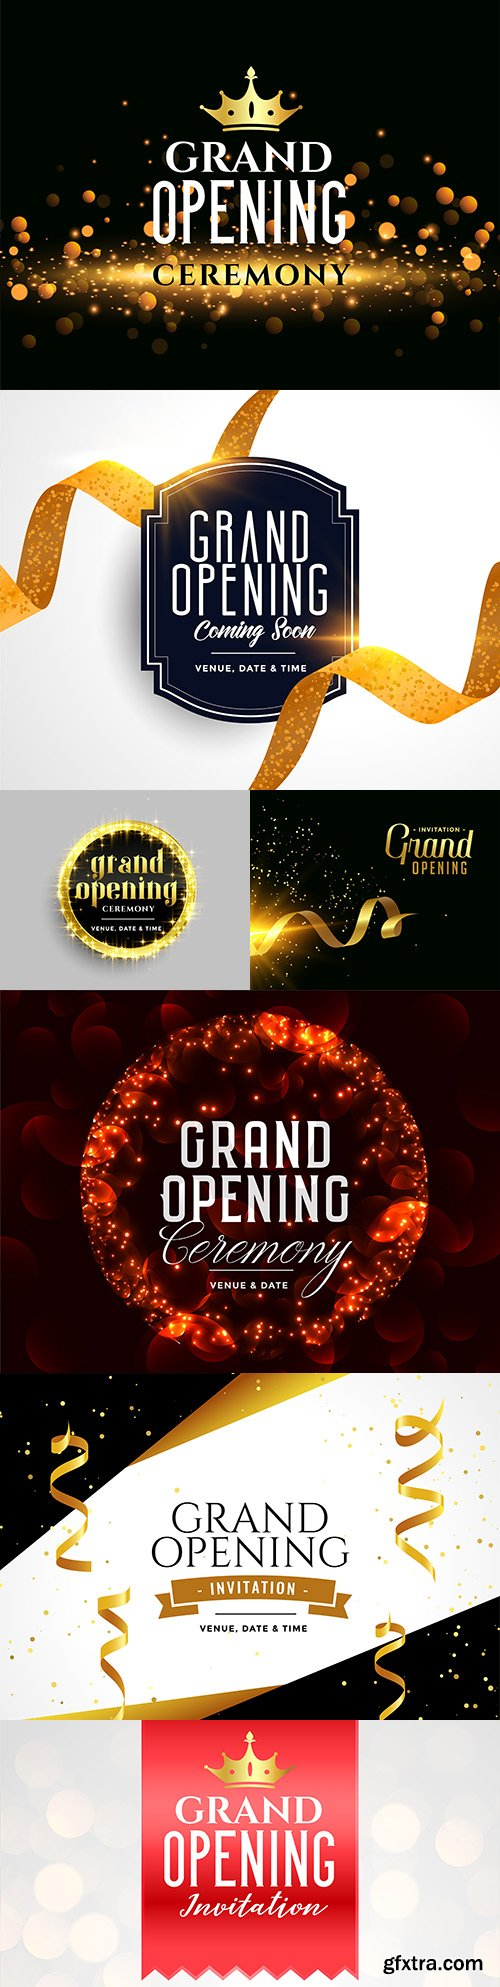 Grand opening ceremony of the celebration with glitter design template